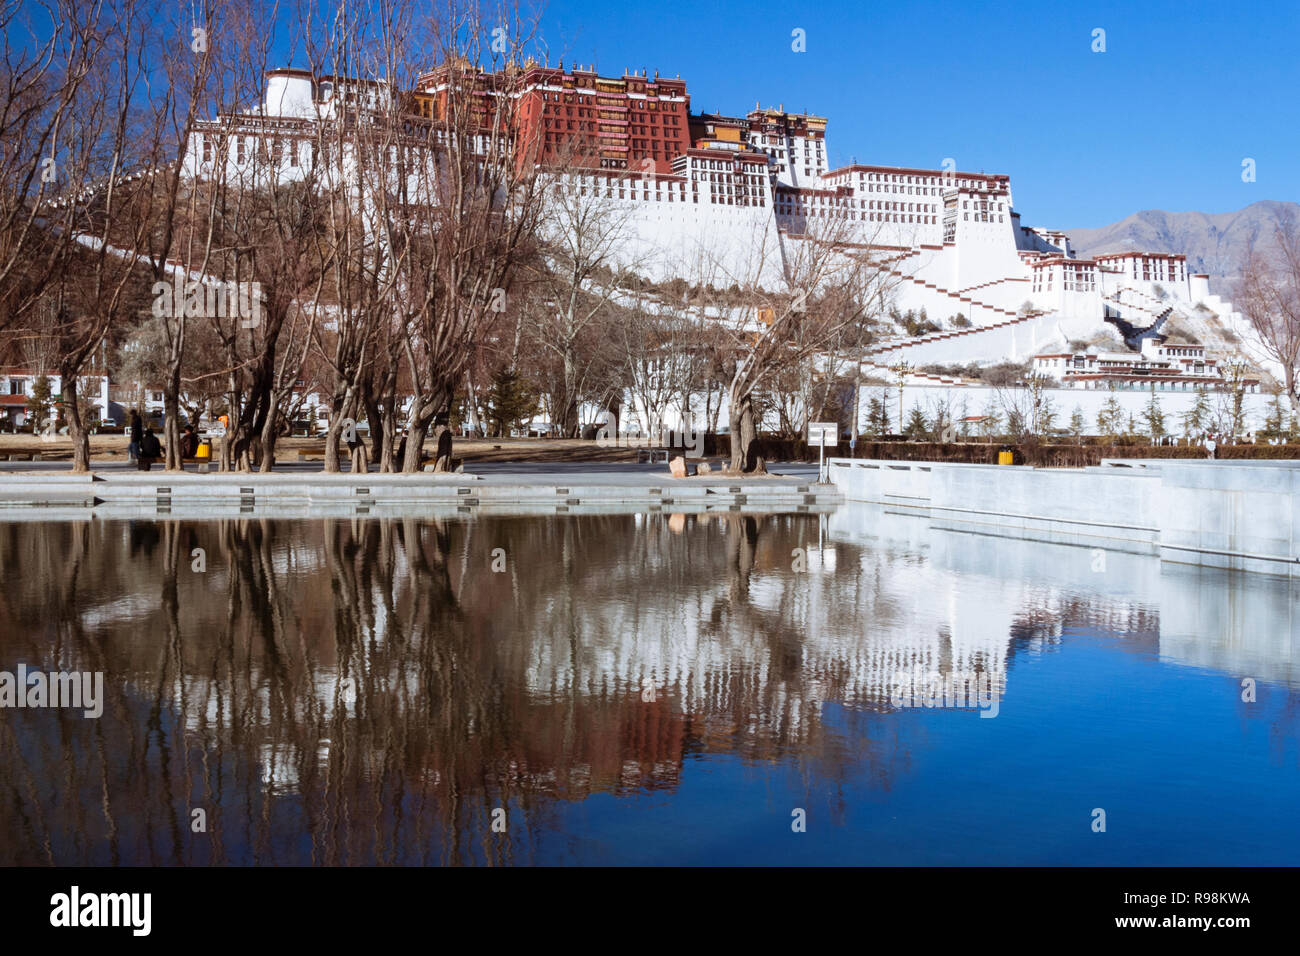 Lhasa, Tibet Autonomous Region, China : Potala palace reflected on a pool. First built in 1645 by the 5th Dalai Lama, the Potala was the residence of  - Stock Image